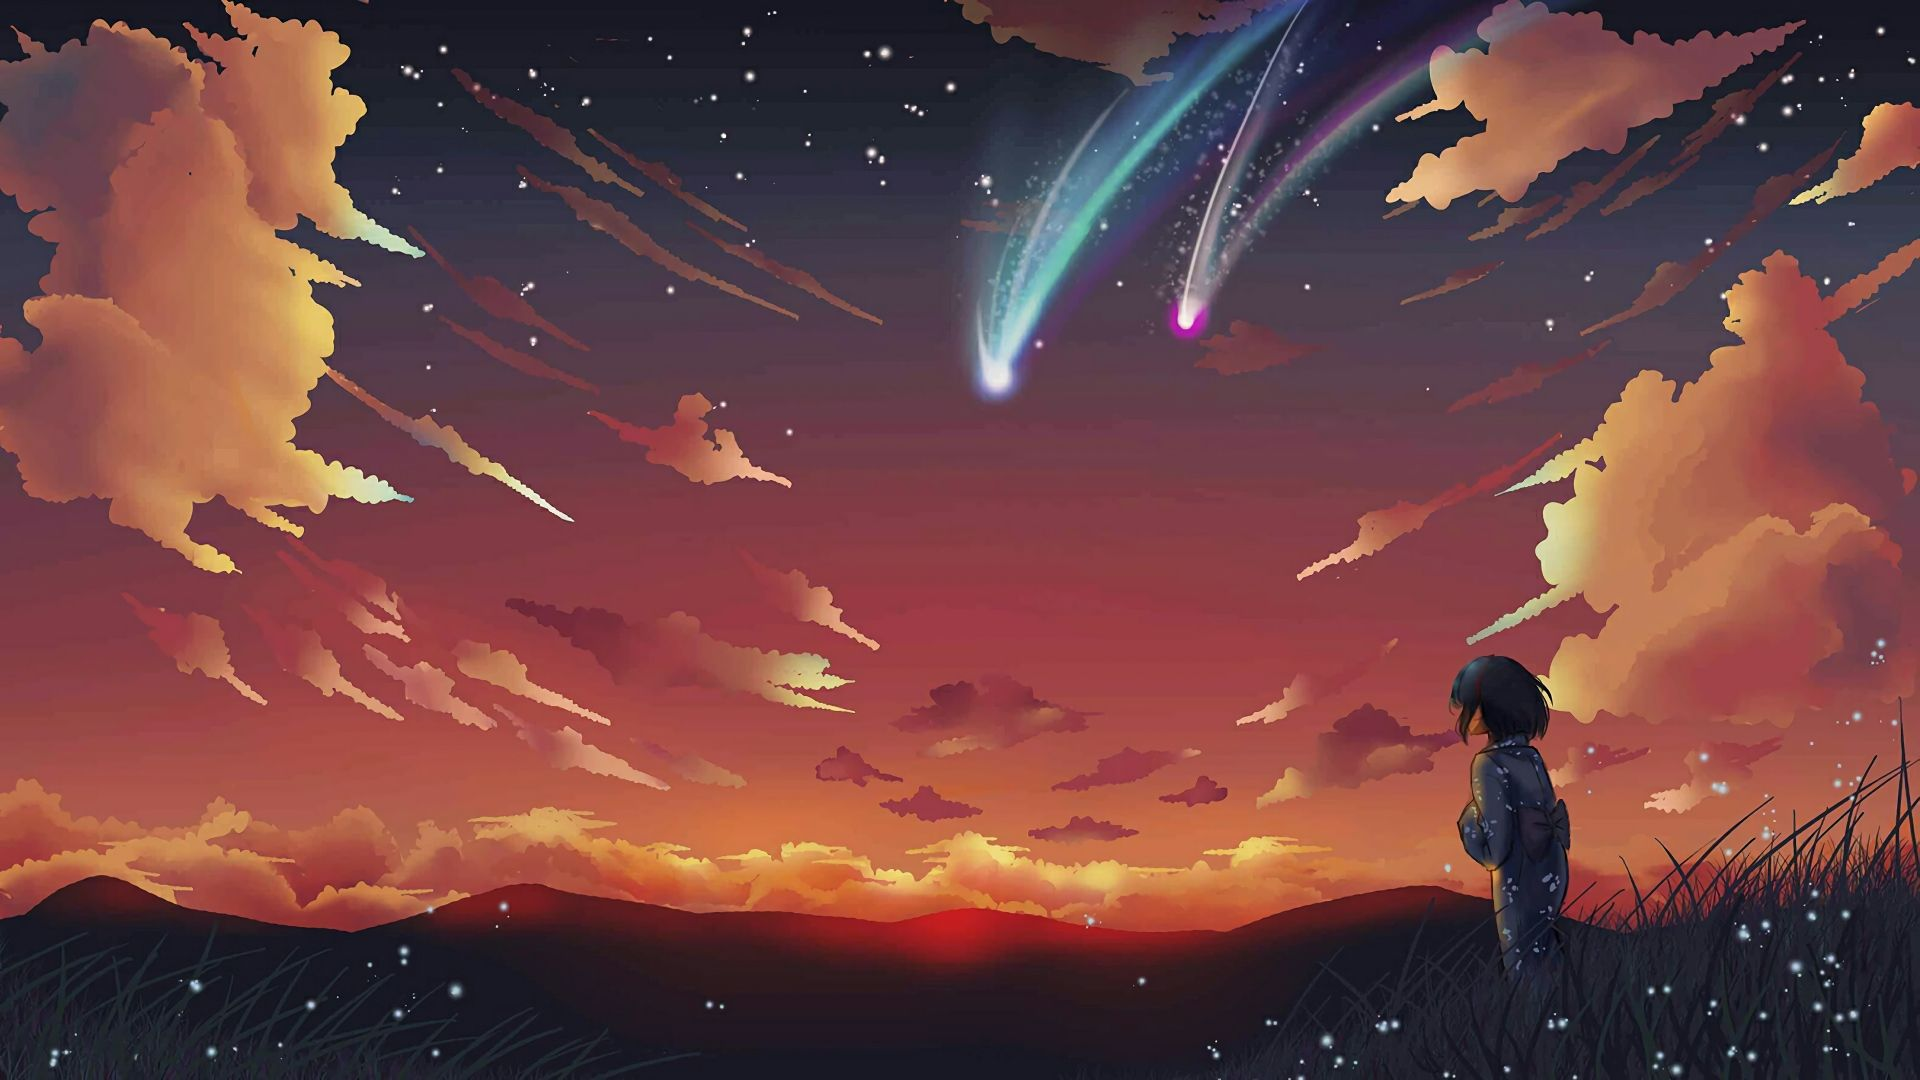 Your Name Mitsuha Anime Scenery Night Comet 17733 Jpg 1920 1080 Anime Scenery Background Images Wallpapers Wallpaper Backgrounds